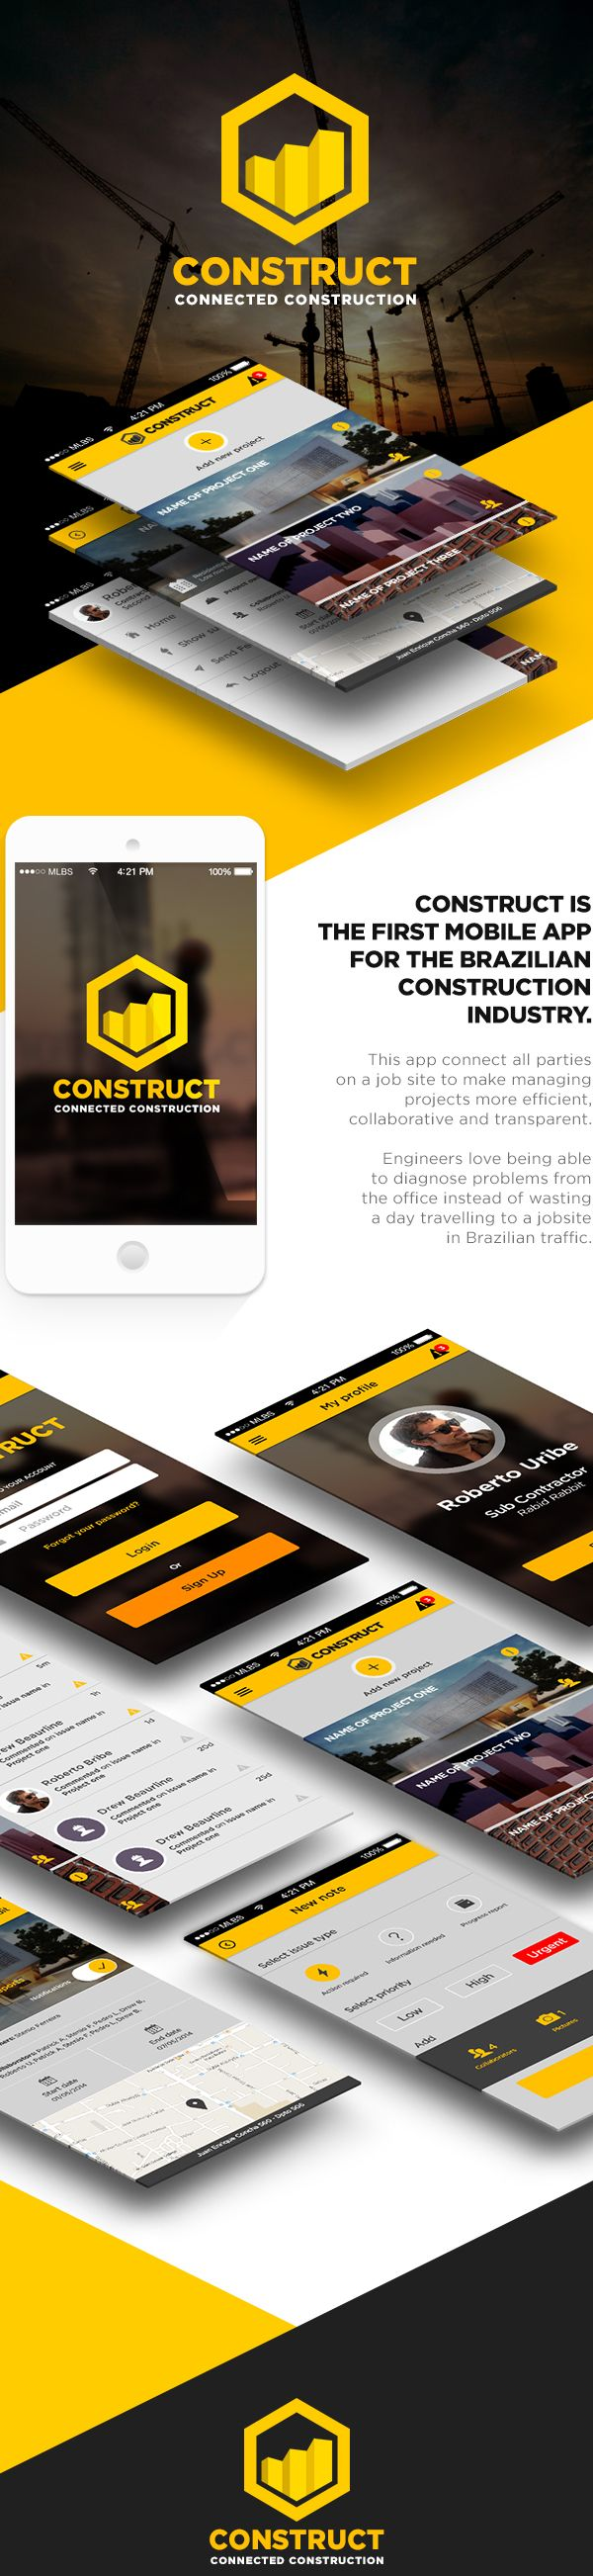 Construct / StartUp / Mobile App by Roberto Uribe. http://bit.ly/1w1E4Hb